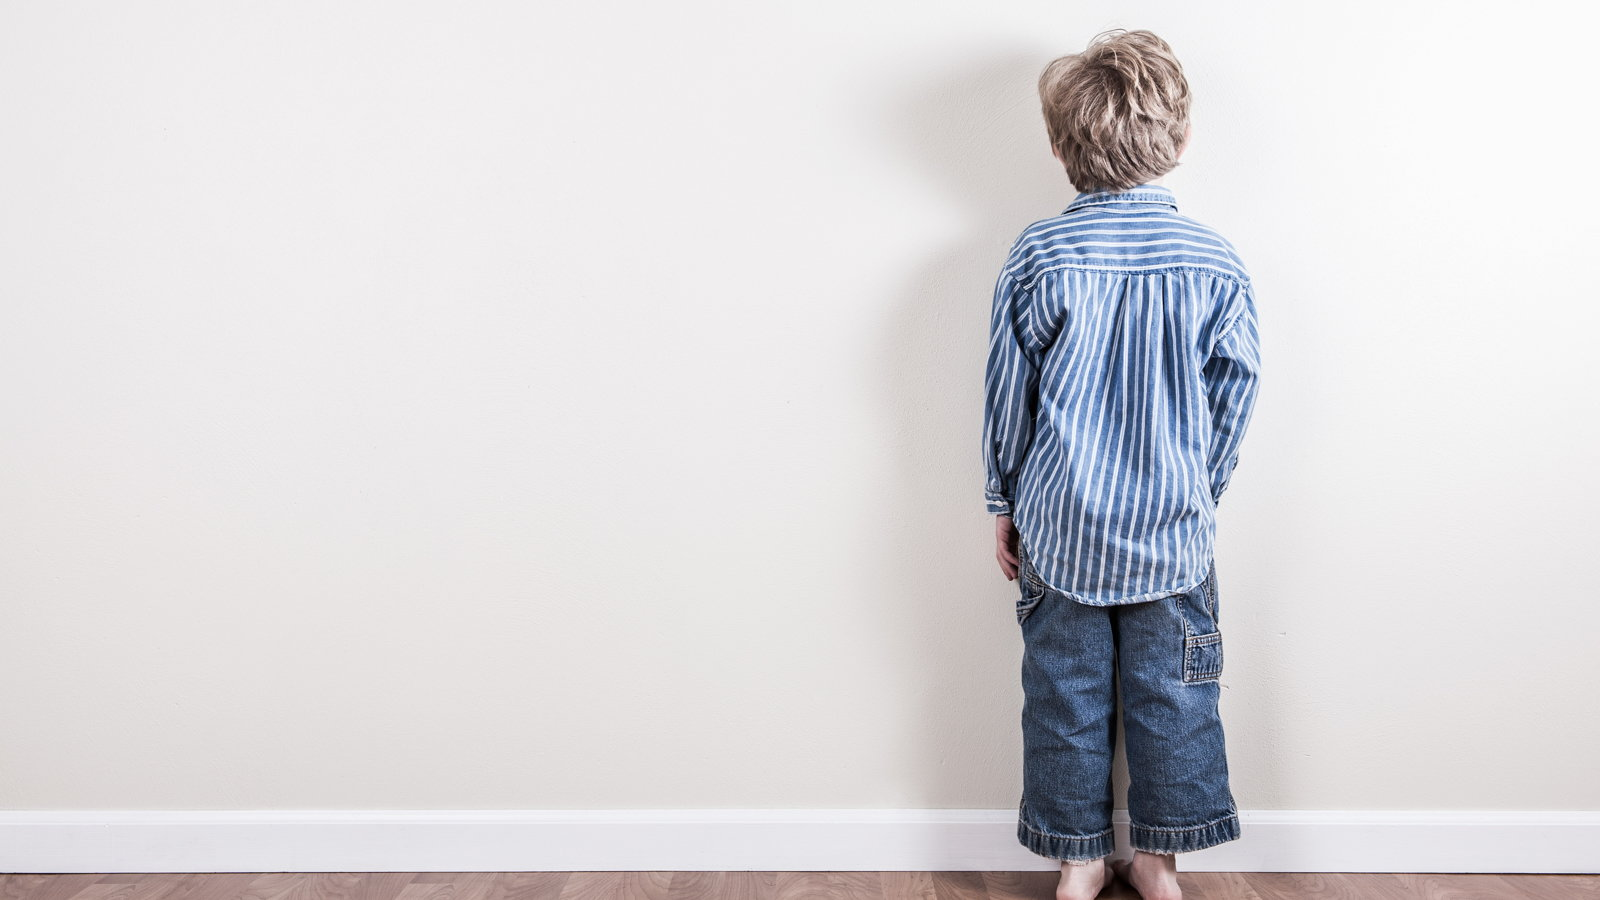 child standing at wall doing time out